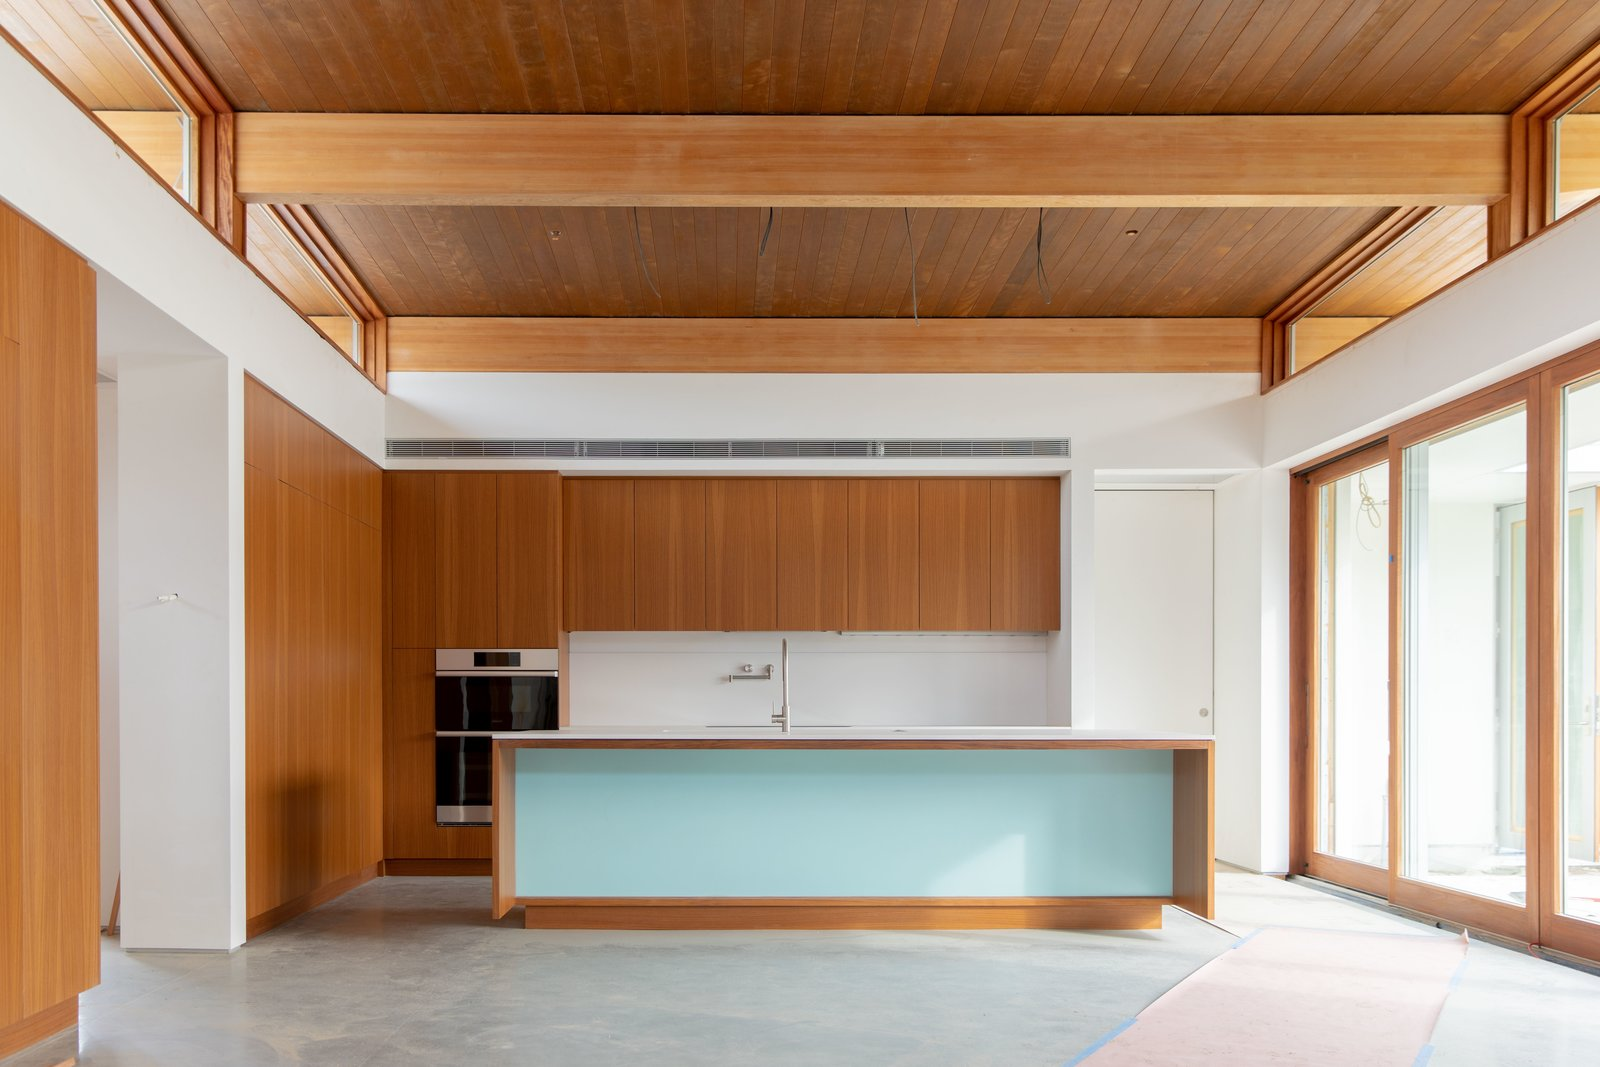 """Kitchen and Wood Cabinet For over a decade, Joel and Meelena Turkel of Turkel Design have been """"continually evolving the notion of what a home should be—maximizing flexibility and energy efficiency using engineered materials in thoughtfully designed, sustainably conceived living environments."""" Here is a look inside their latest project, the Axiom Desert House, which will soon be their own family abode.  Photos from A Palm Springs Net-Zero Prefab Flaunts an Elegant, Airy Kitchen"""